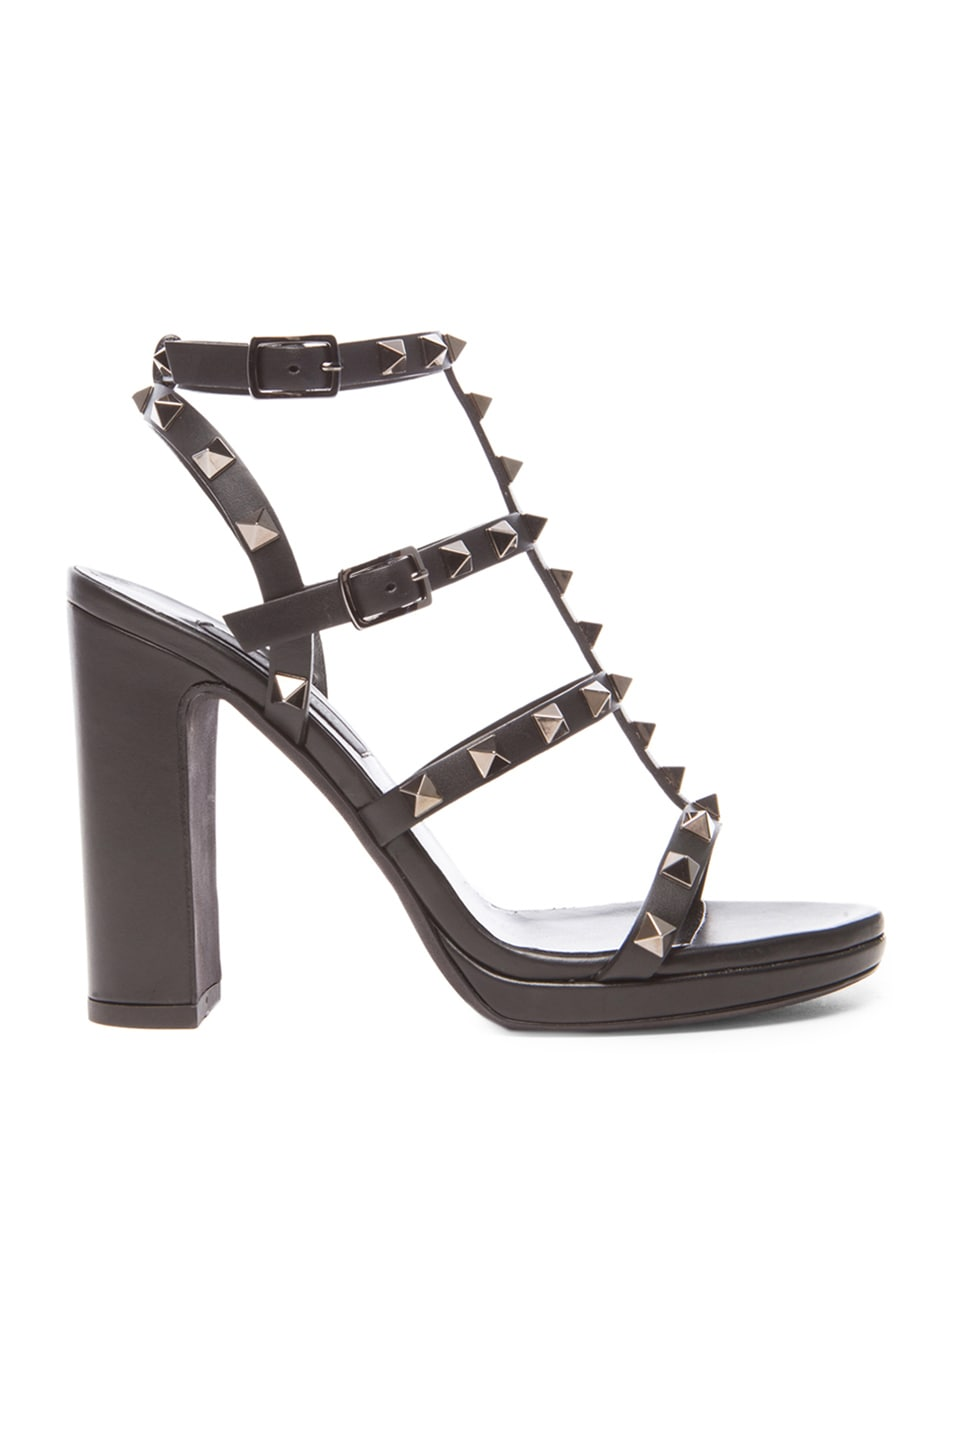 Image 1 of Valentino Noir Rockstud Leather Gladiator Heels T.95 in Ruthenium Black